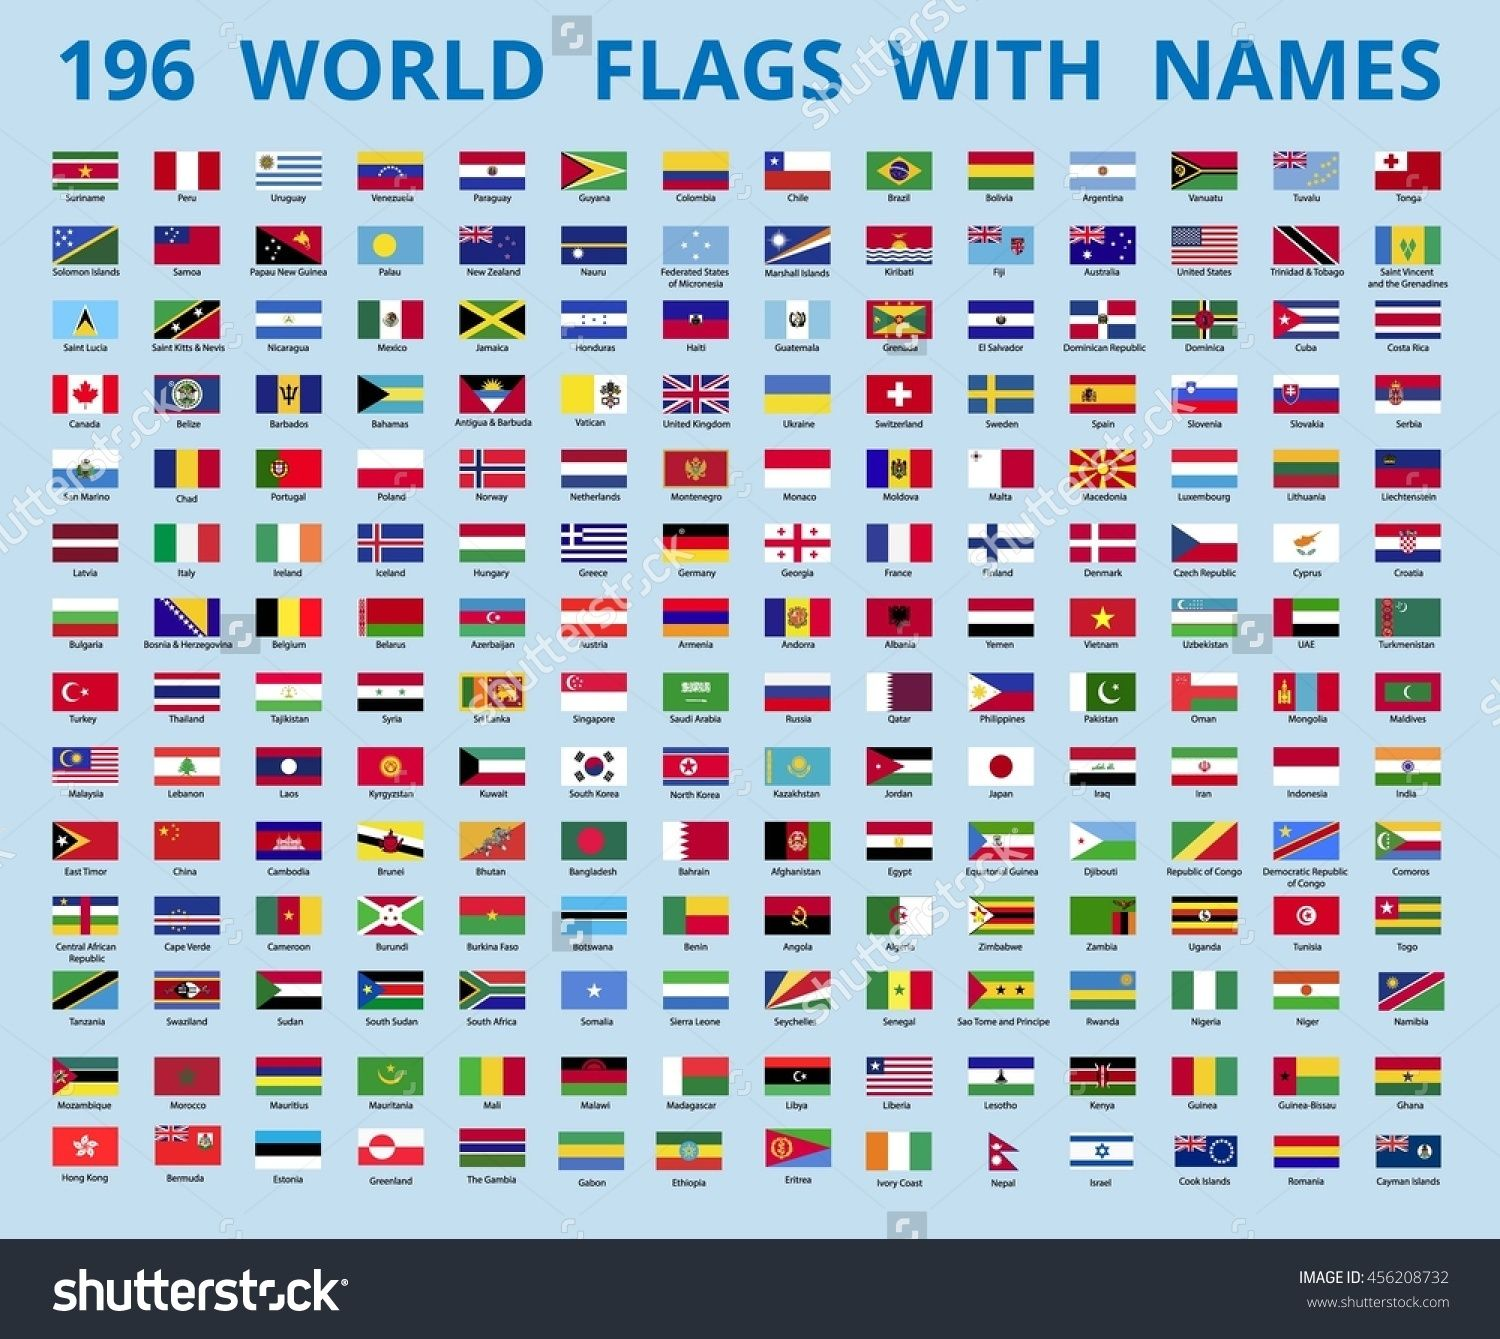 Flags Of The World With The Name Of The Country Vector Illustration Flags With Names Flags Of The World World Flags With Names